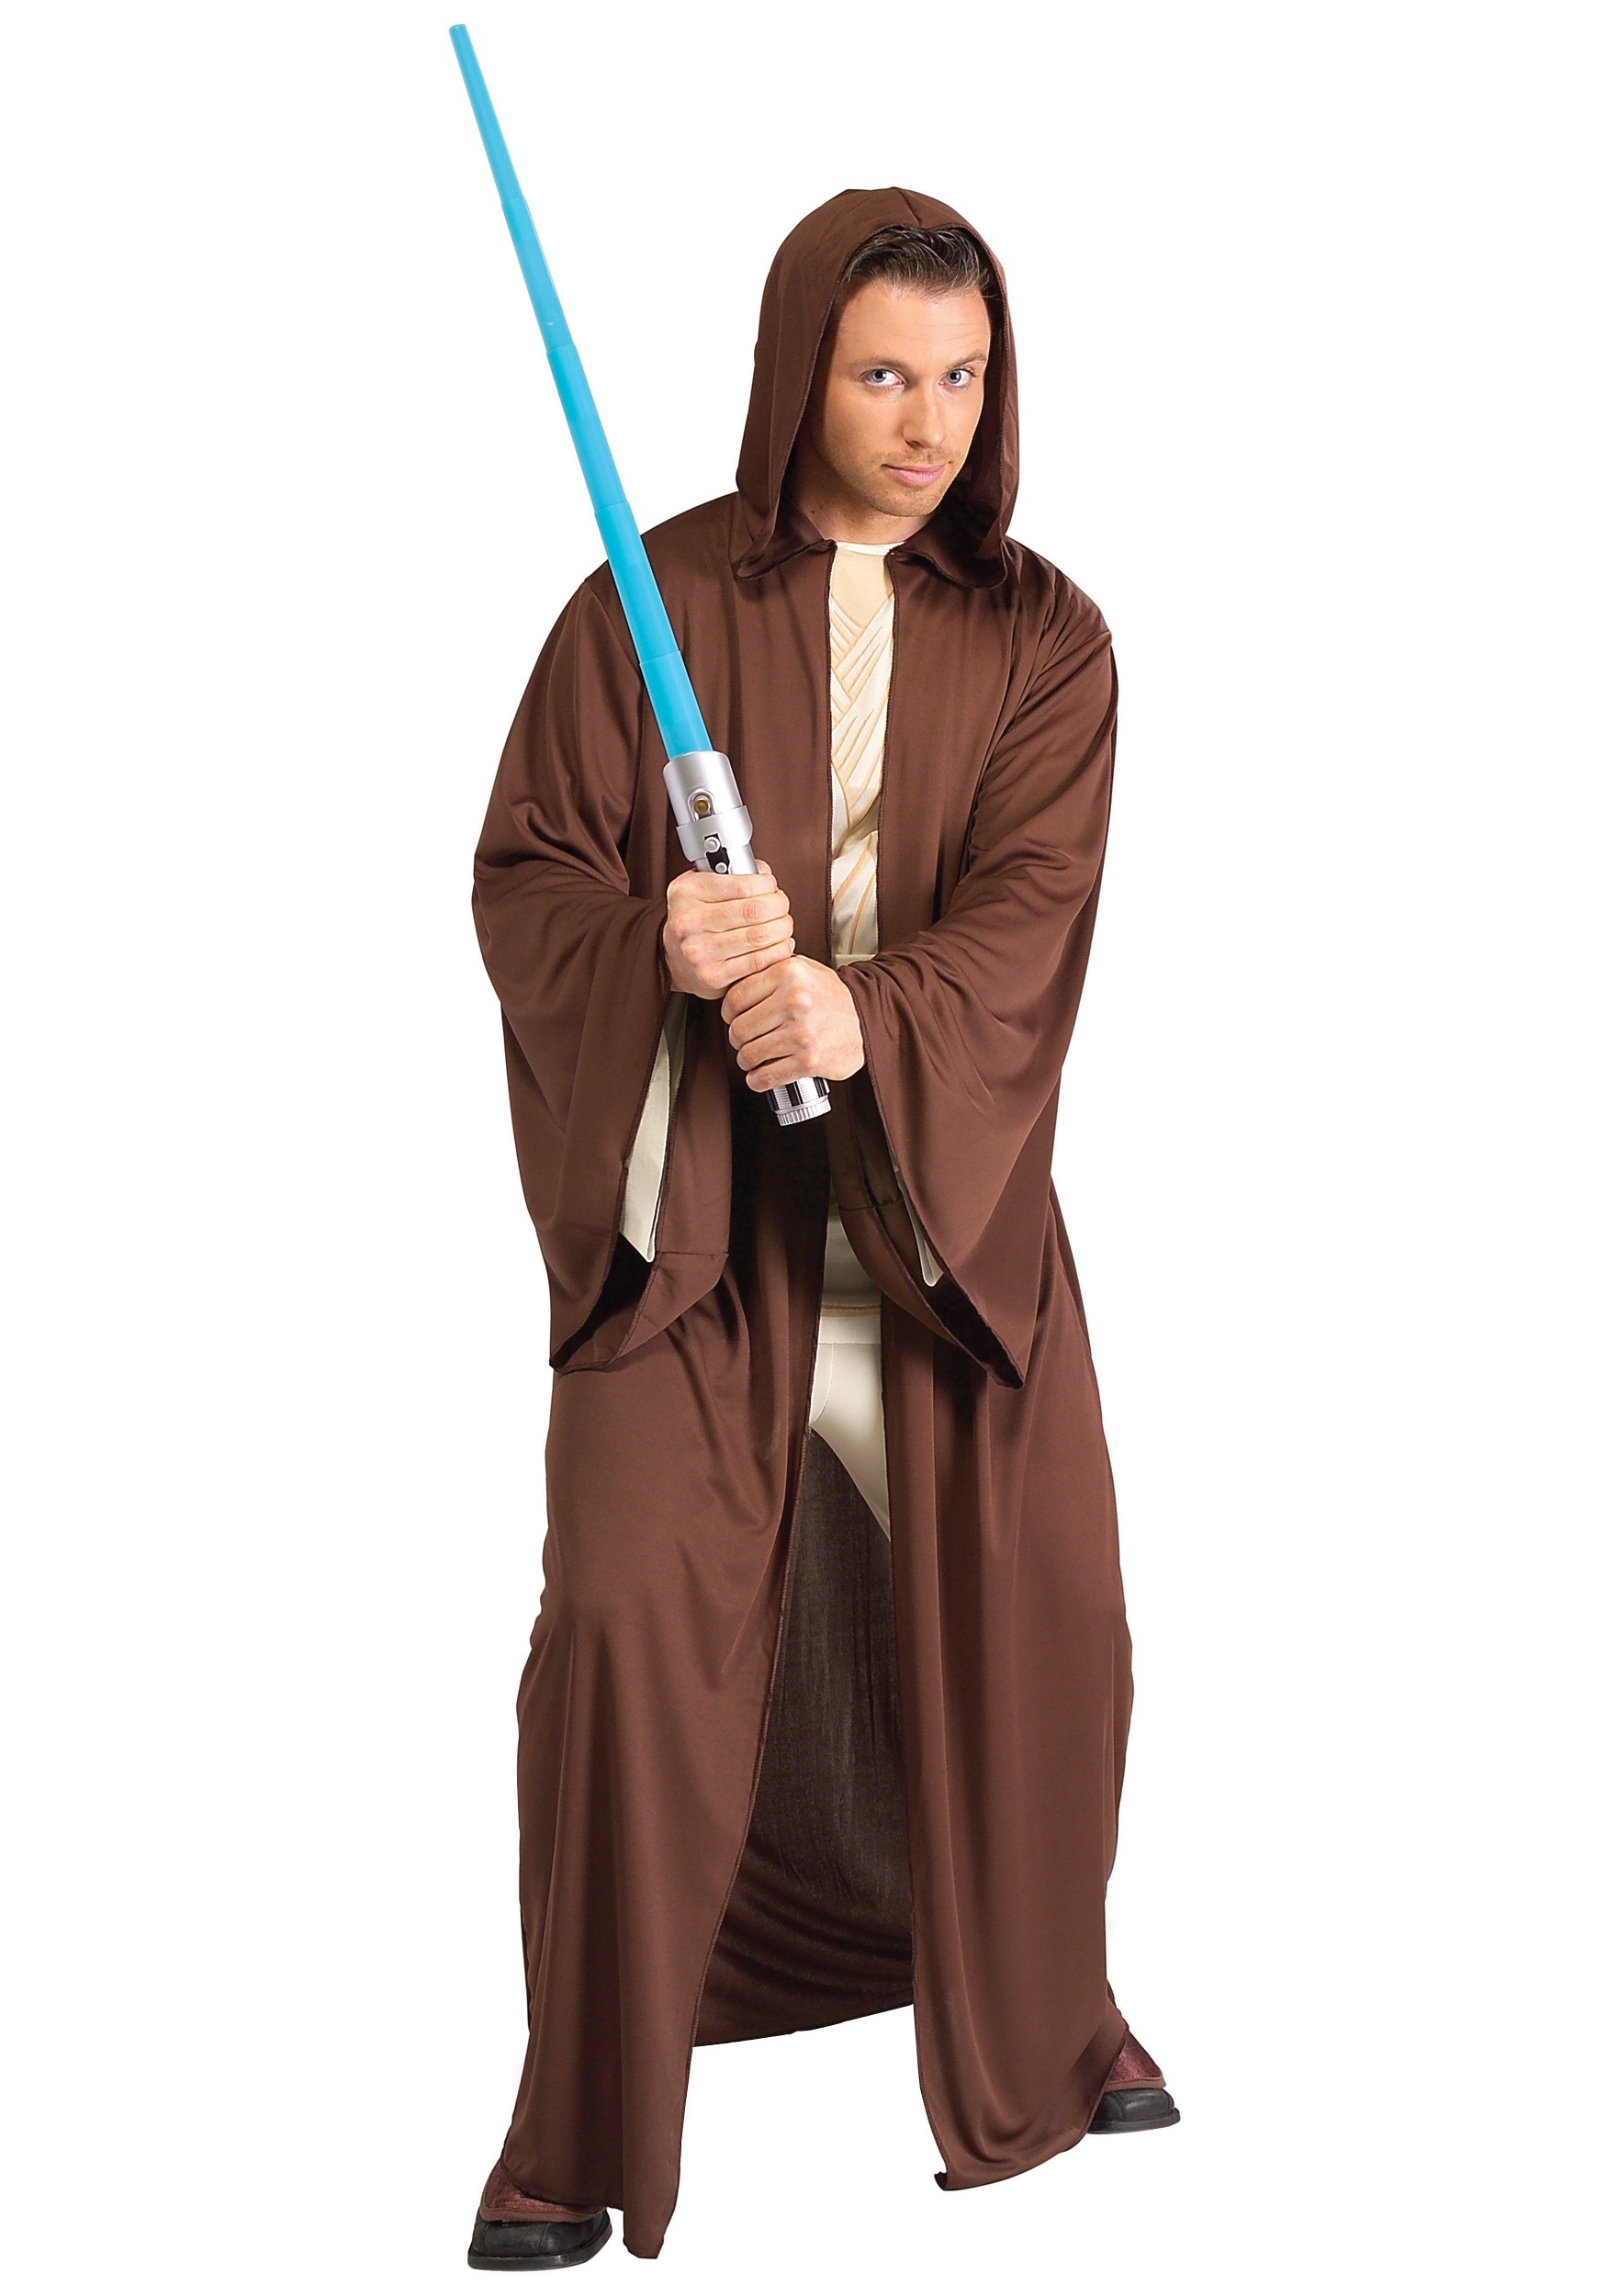 Plus Size Jedi Robe Costume